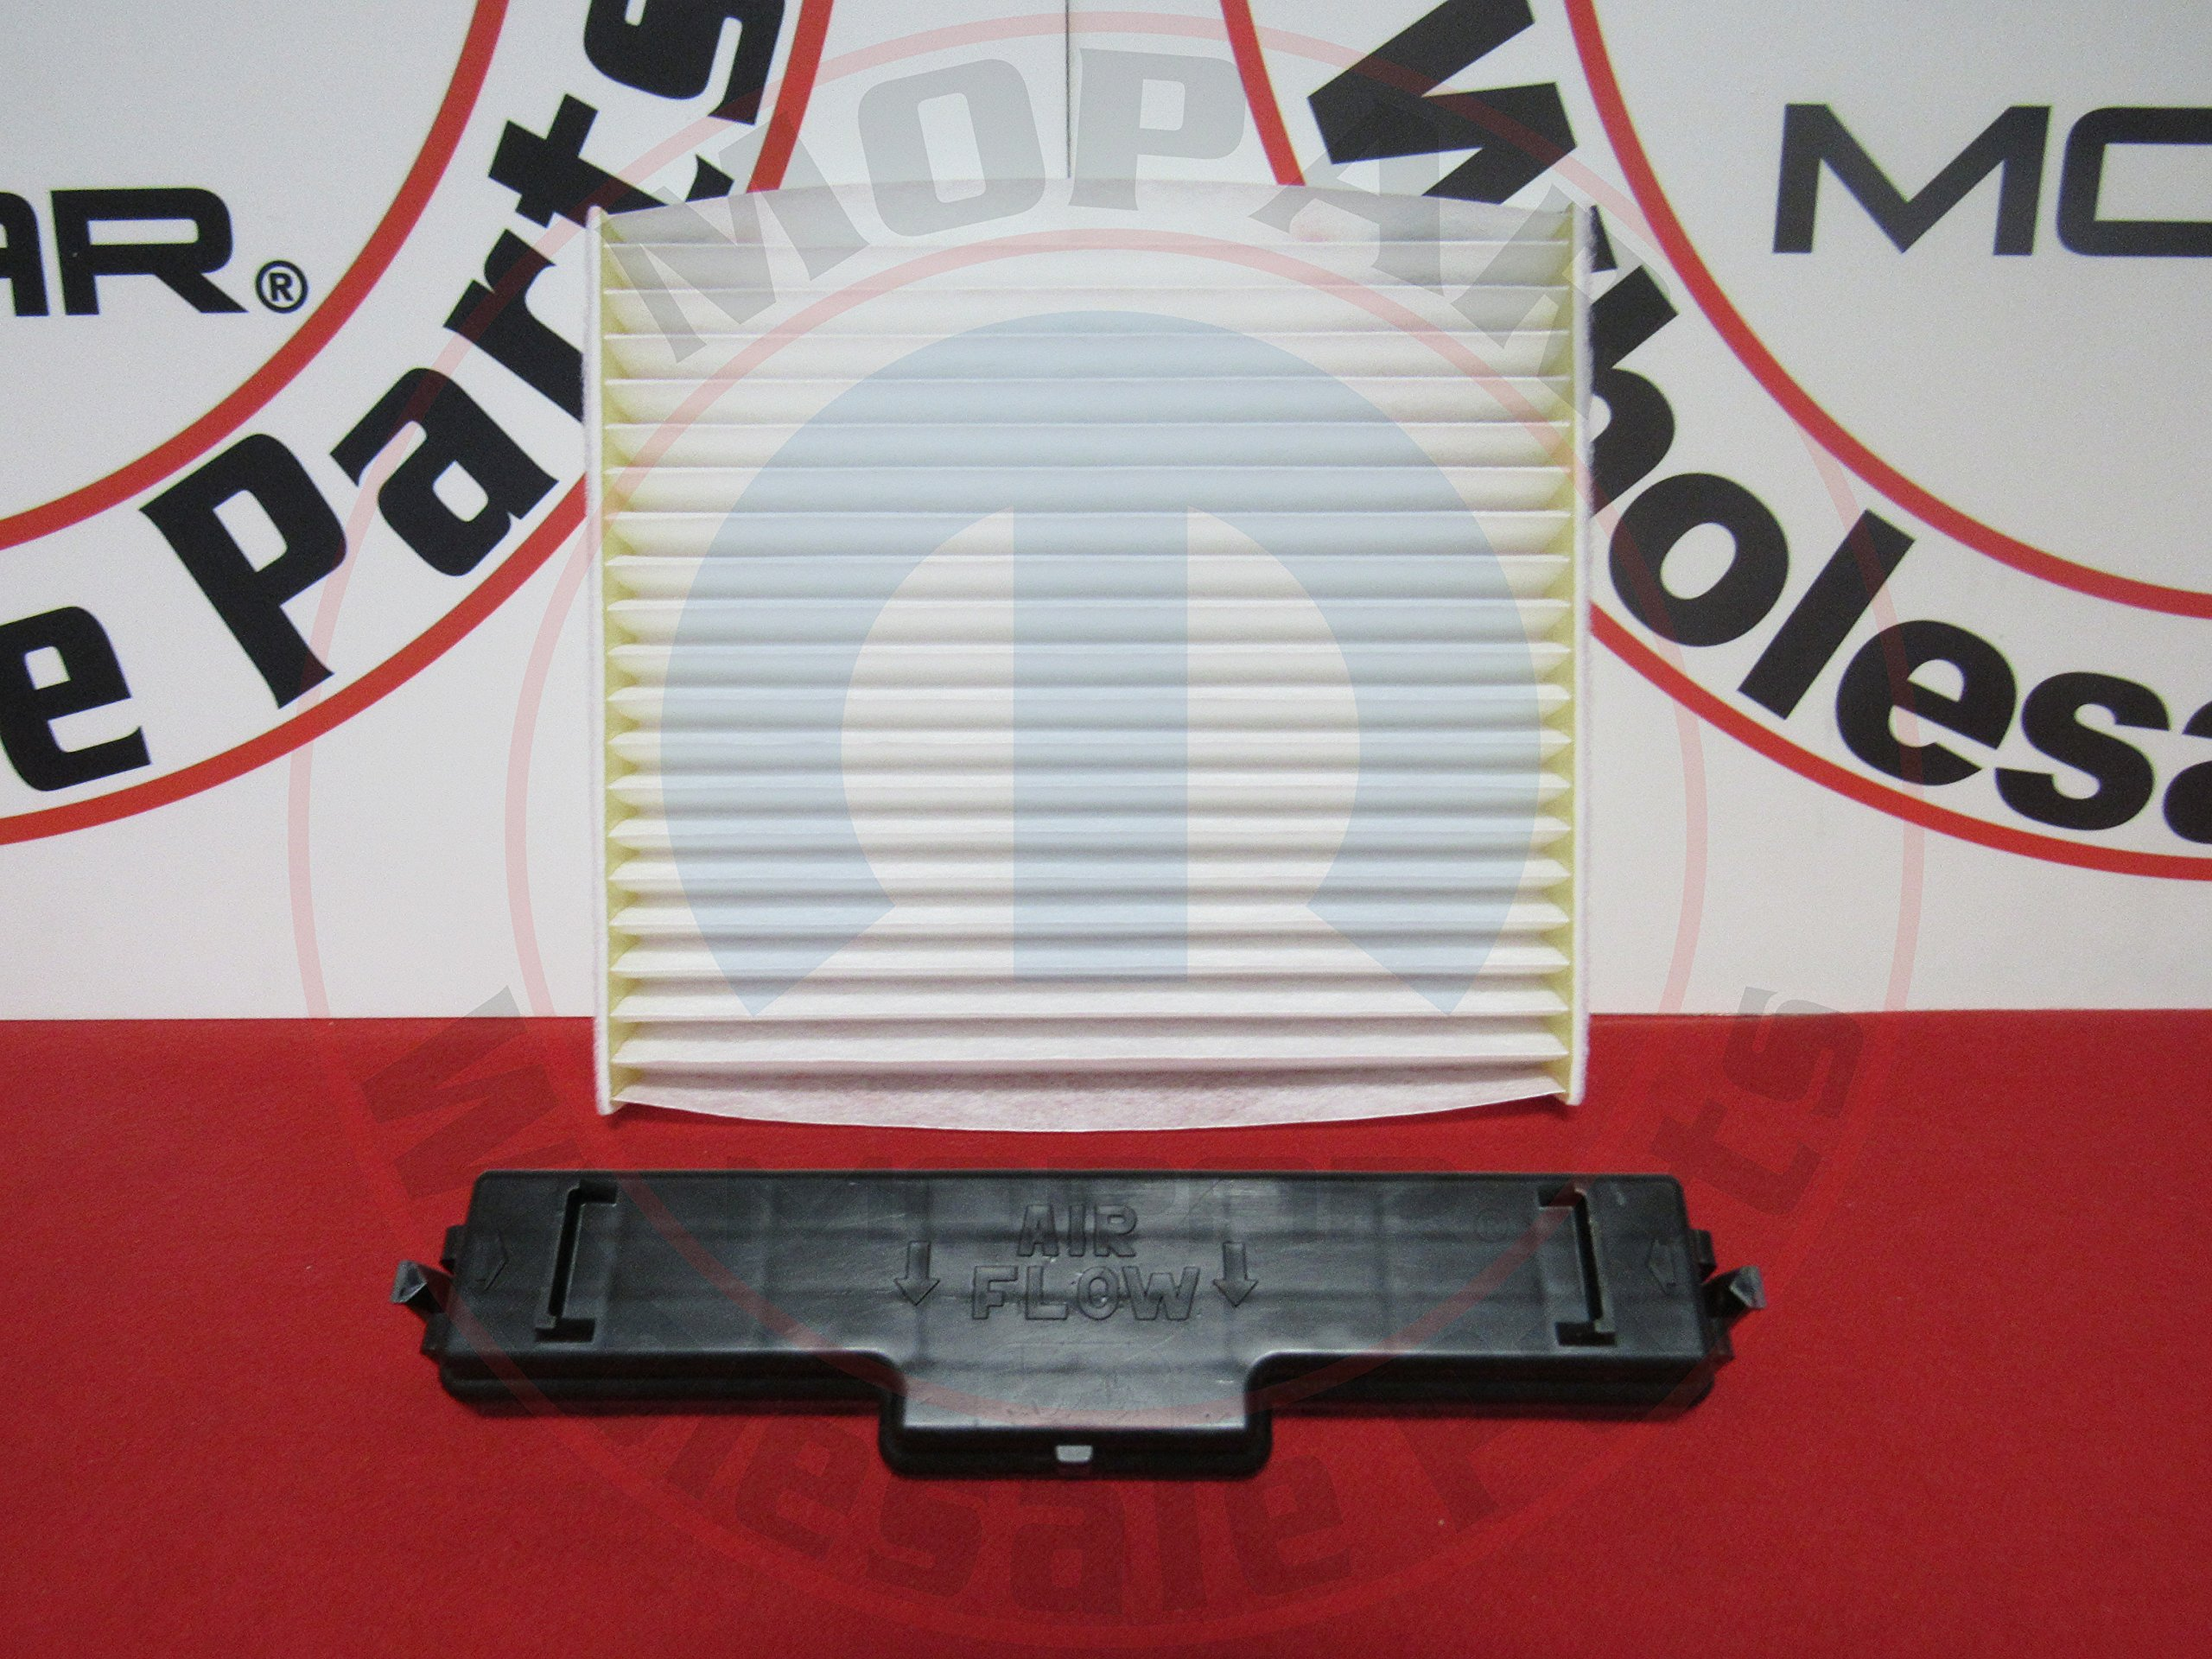 DODGE RAM 1500 2500 3500 Cabin Air Filter And Filter Access Door NEW OEM MOPAR by Mopar